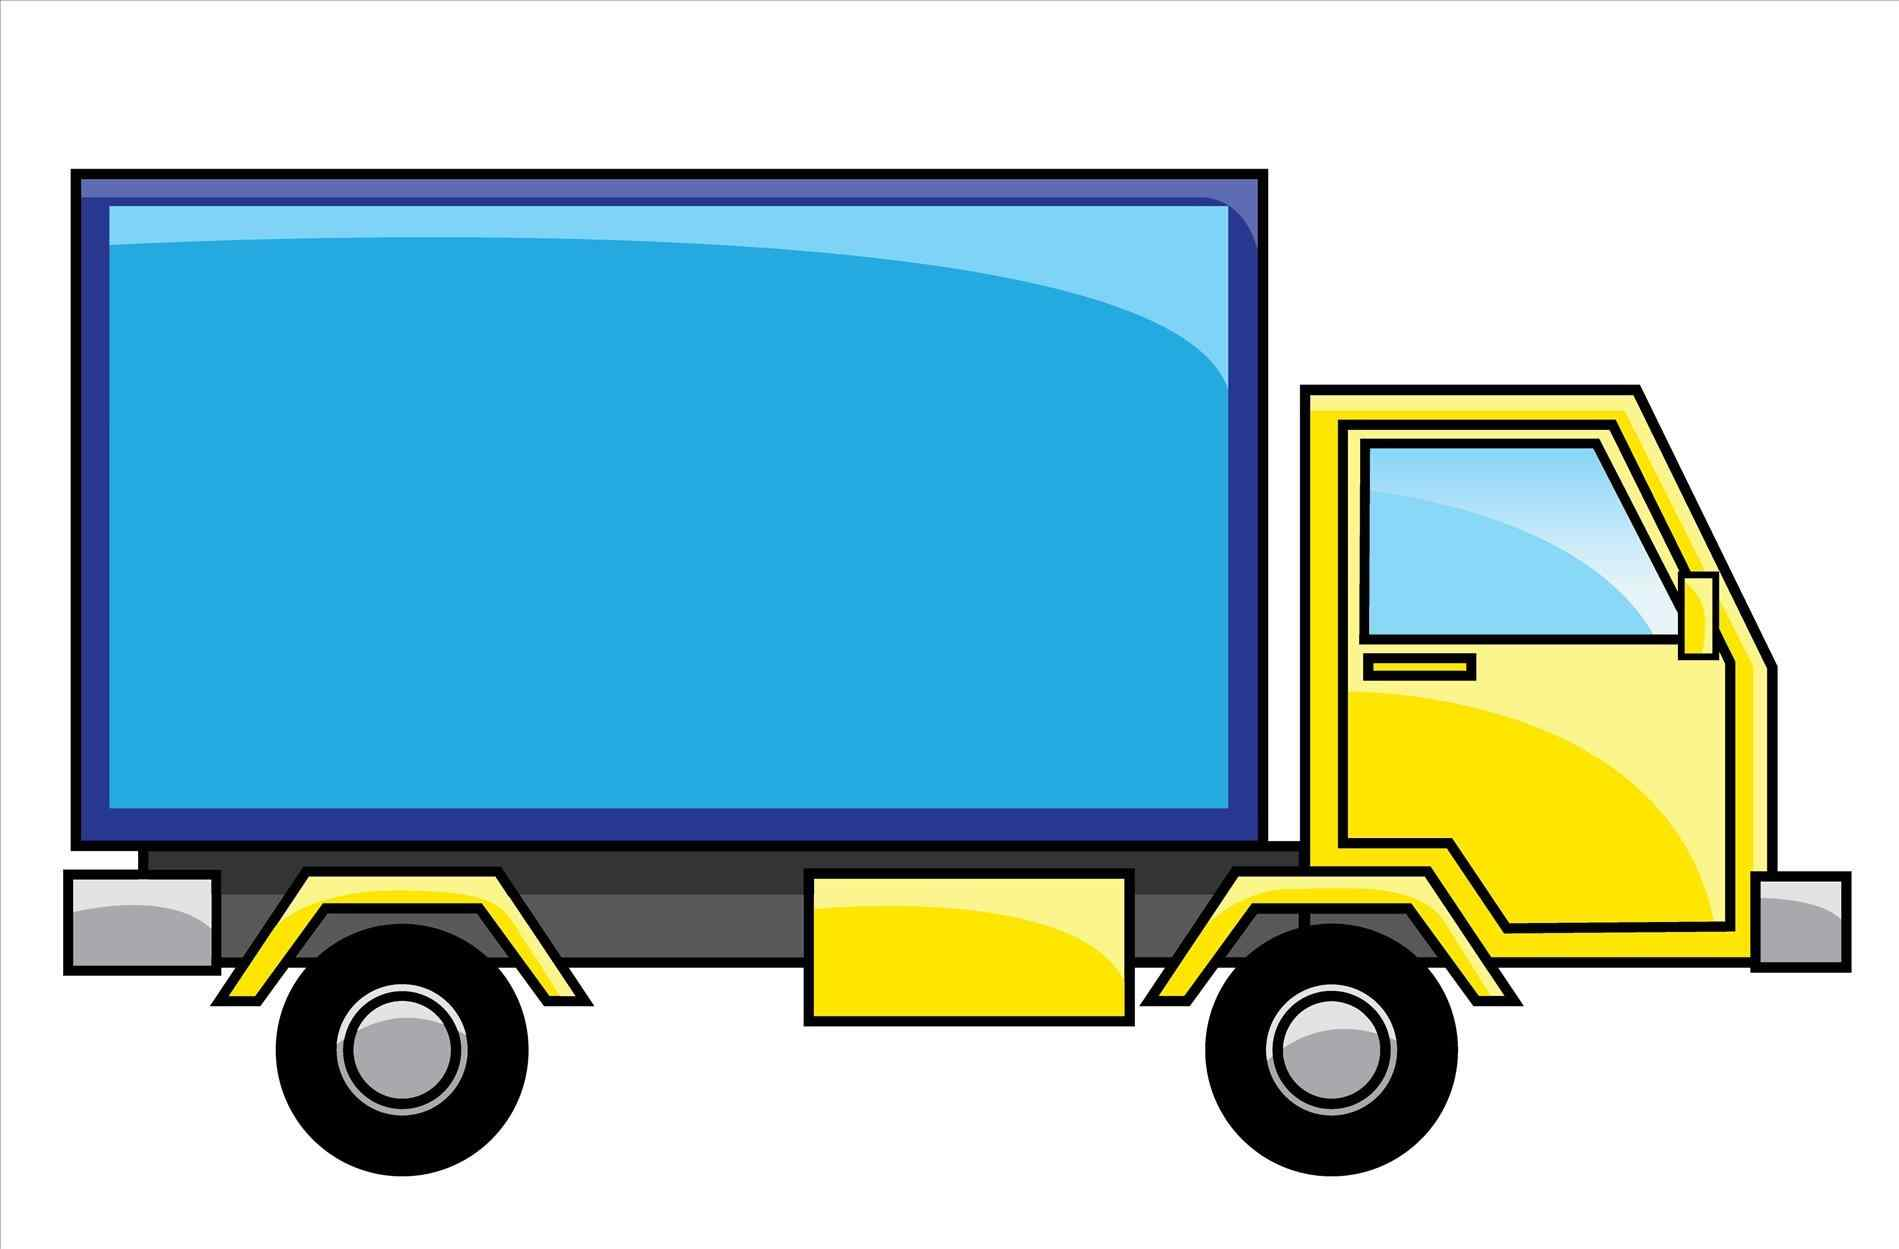 Truck clipart. The images collection of